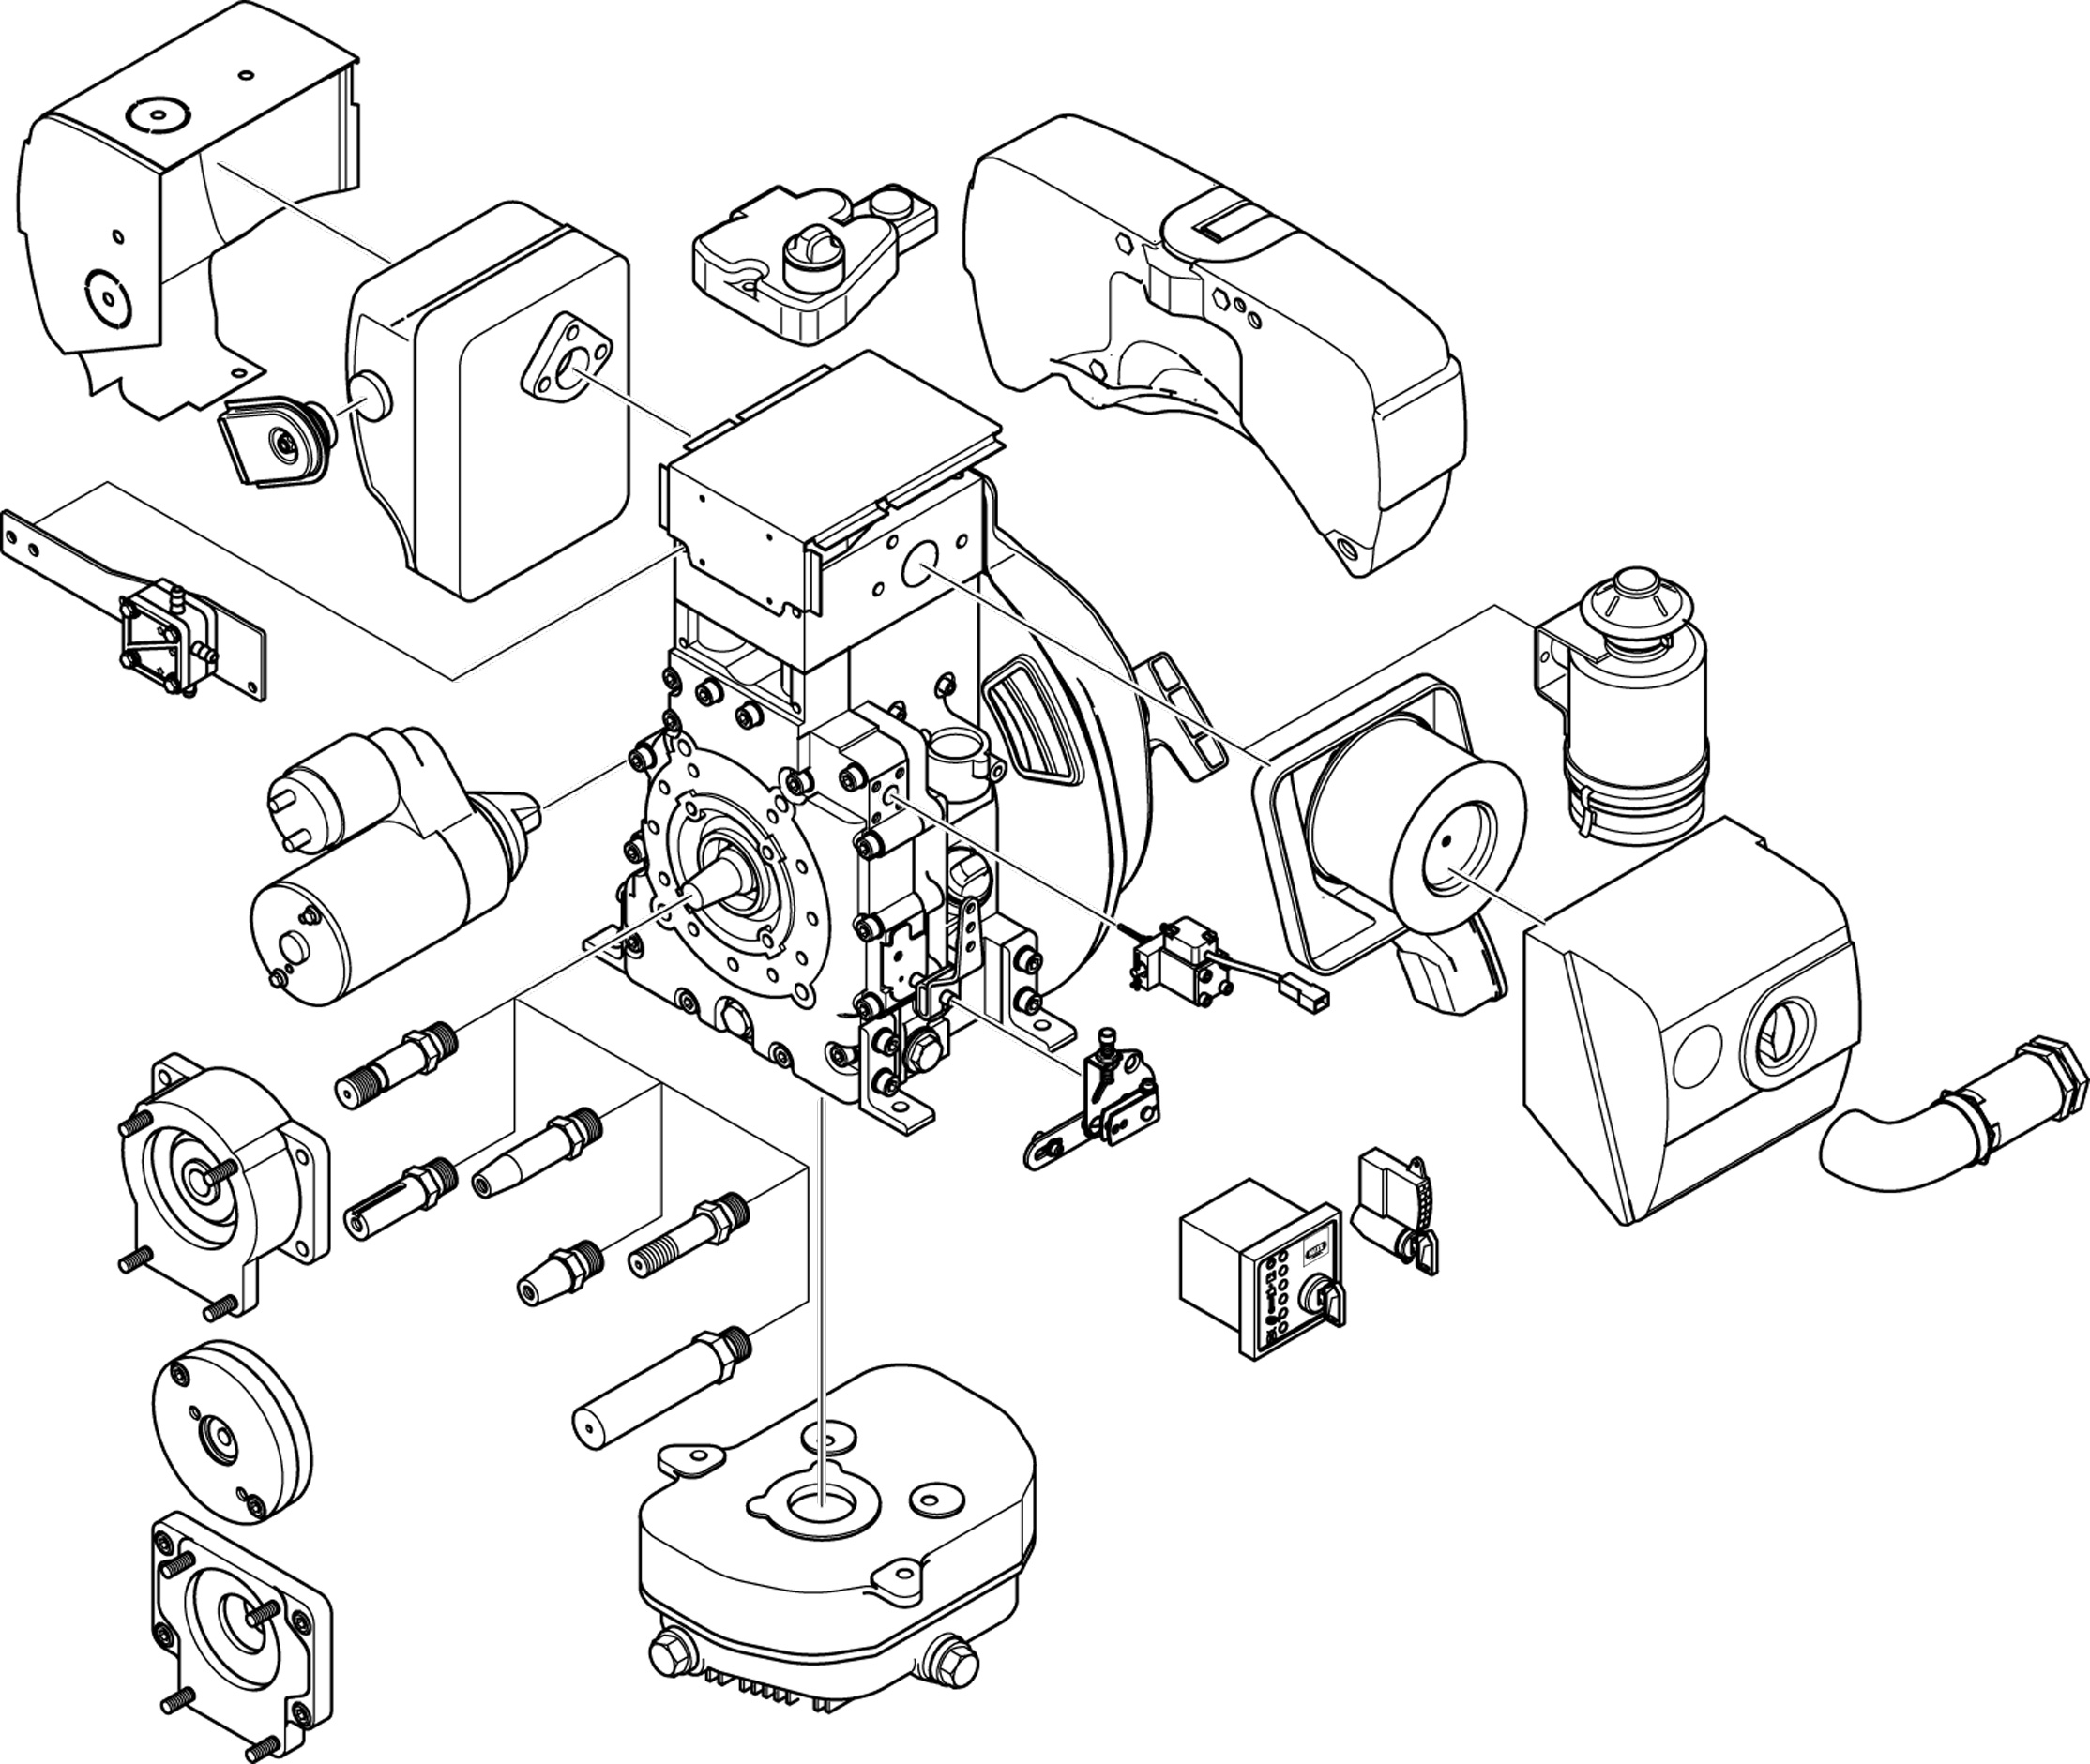 Subaru Engines Boxer 4wd Diagram Engine Parts Drawing At Free For Personal Use 2228x1881 B Series Small Diesel Single Cylinder